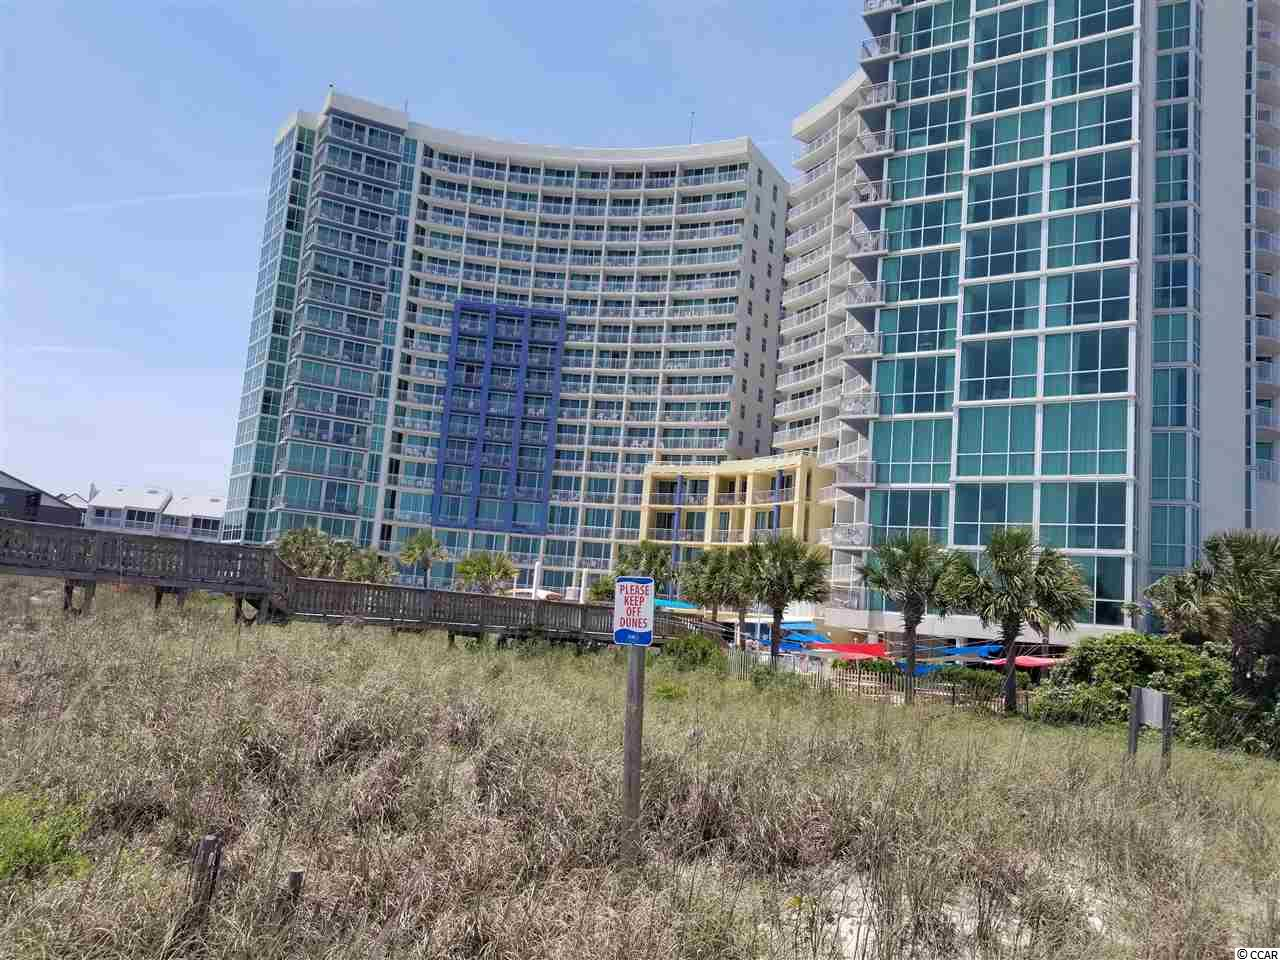 NEW Heat and Air Conditioning HVAC installed November 2020.  Ocean View Condo with large balcony to enjoy the views of Ocean Boulevard and the Ocean, looking North.  You've found the right condo for you, that can serve as your 2nd residence or as a great rental unit that you can use when not rented.  Ocean Views and great views of N. Ocean Boulevard.  Avista is in the heart of North Myrtle Beach.  Enjoy all of the building amenities:  Onsite Restaurant, Snack Shack, Bar...Indoor Pool, Lazy River and Hot Tub, as well as a great outside pool, lazy river, Kiddie Pool, Sun Deck.  Avista is an Ocean Front Resort, so come on down to North Myrtle Beach and enjoy all this beach community has to offer....restaurants, golf, shopping, boating, fishing and long walks on the beach or relaxing on the beach.  Listing Agent is related to Seller.